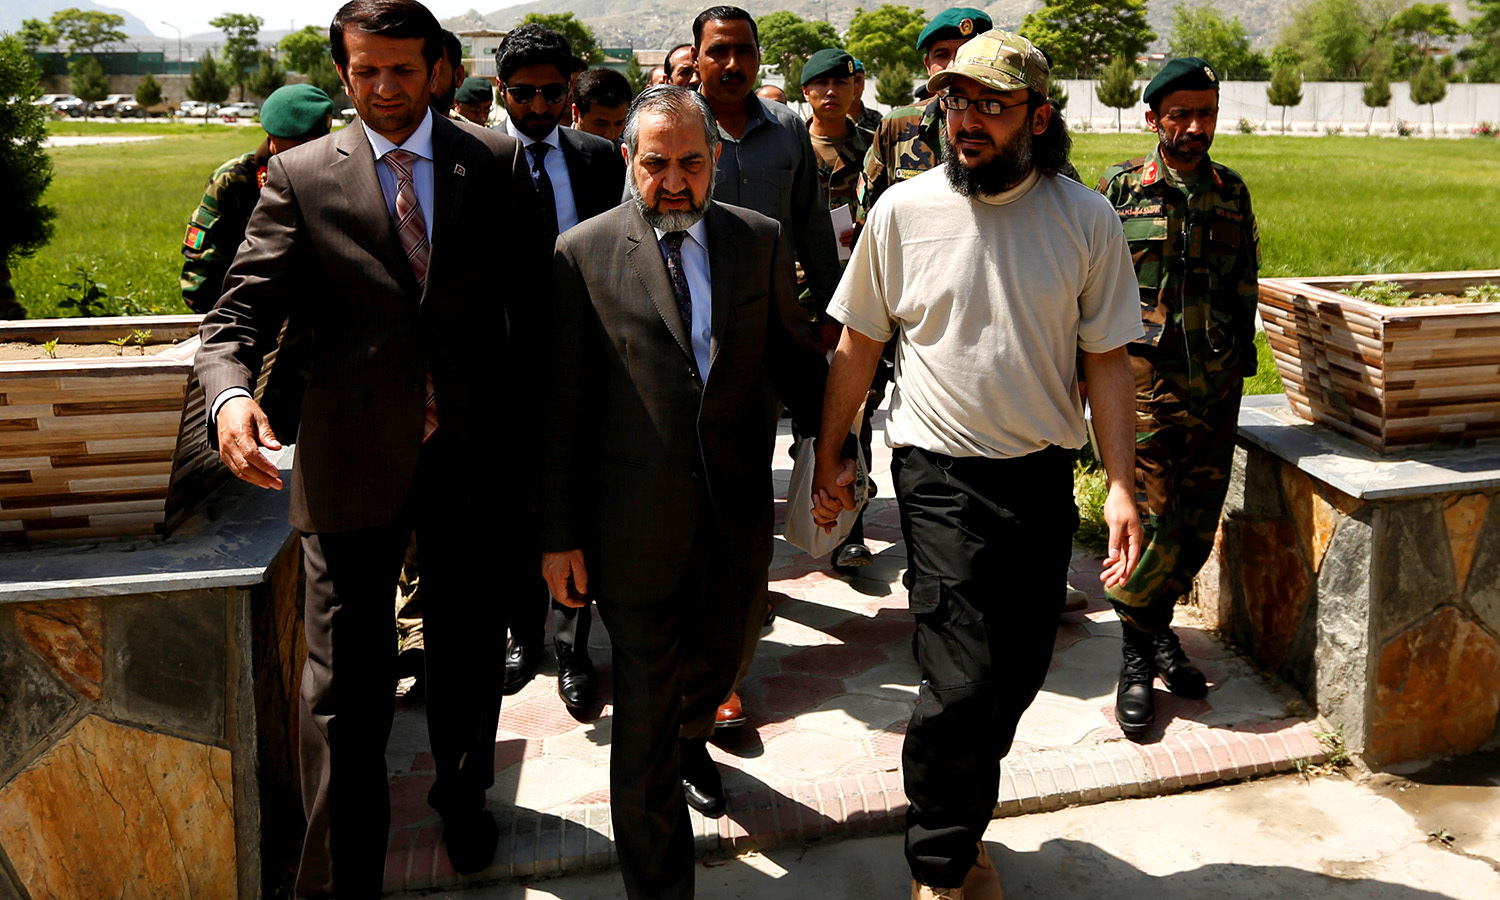 Ali Haider Gilani (L) walks with Pakistan's Ambassador to Afghanistan Syed Abrar Hussain (C) at the Defence ministry. -Reuters